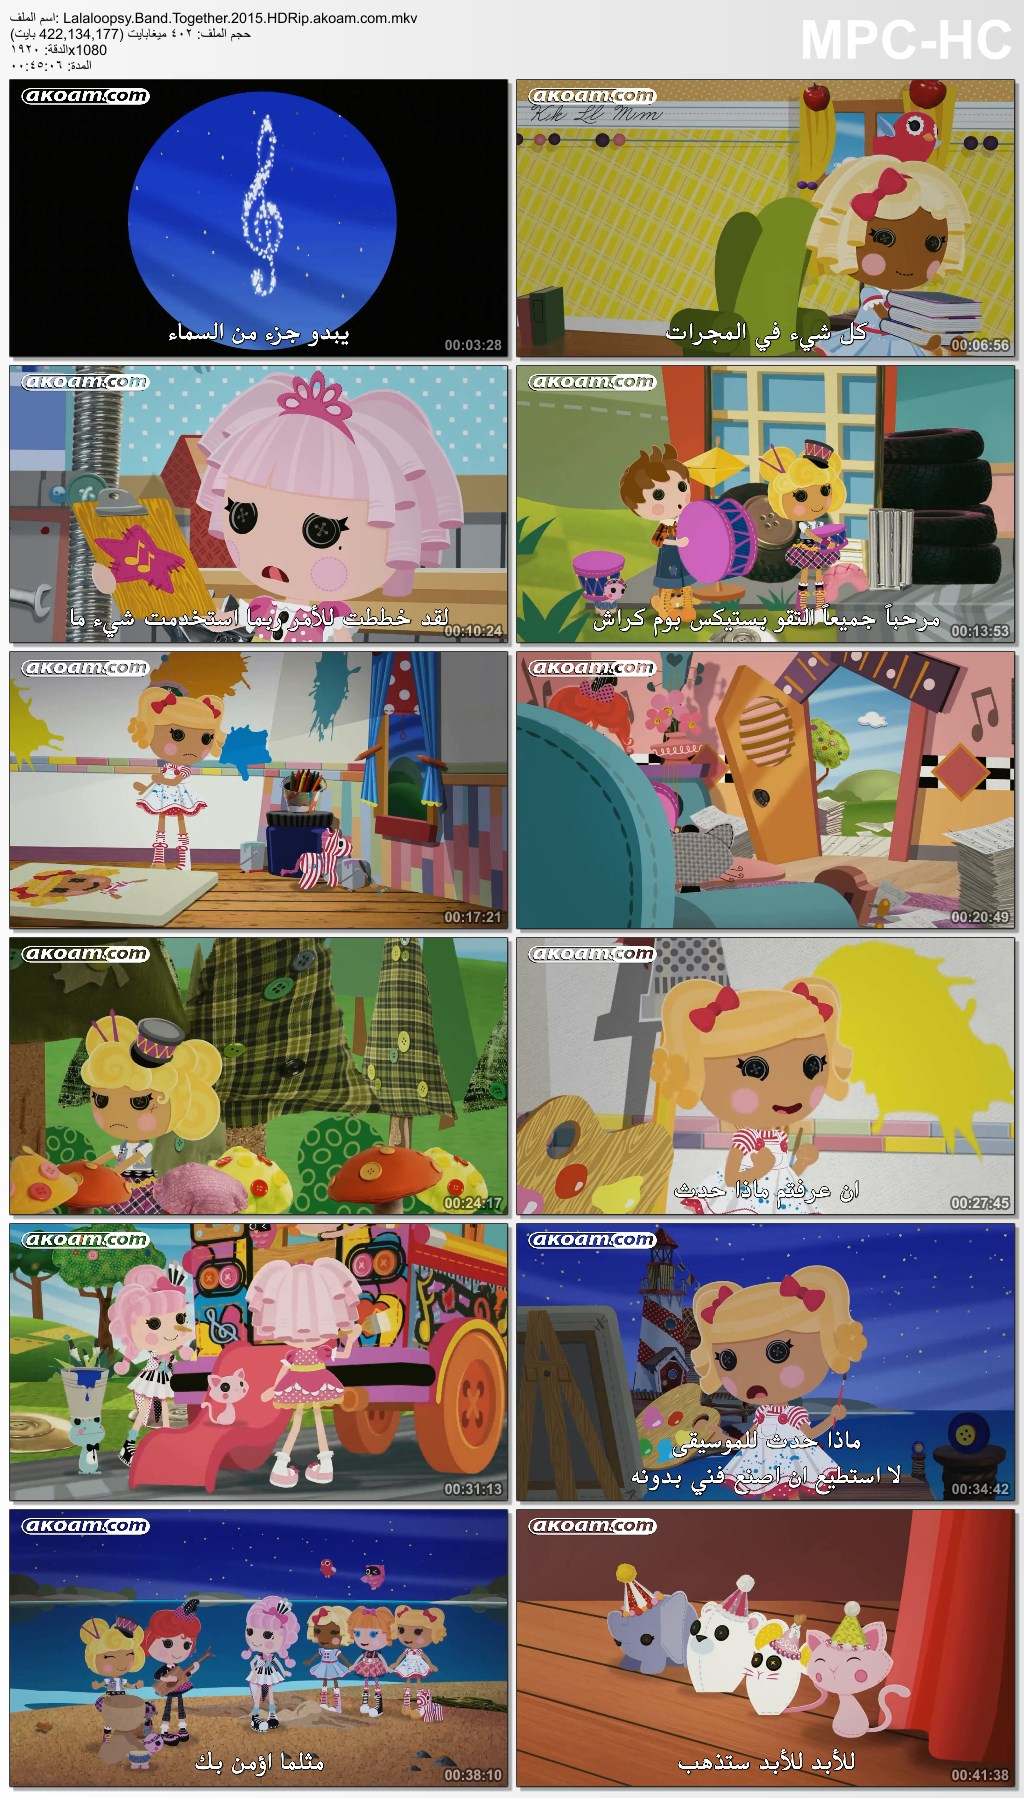 الانيميشن,Lalaloopsy Band Together